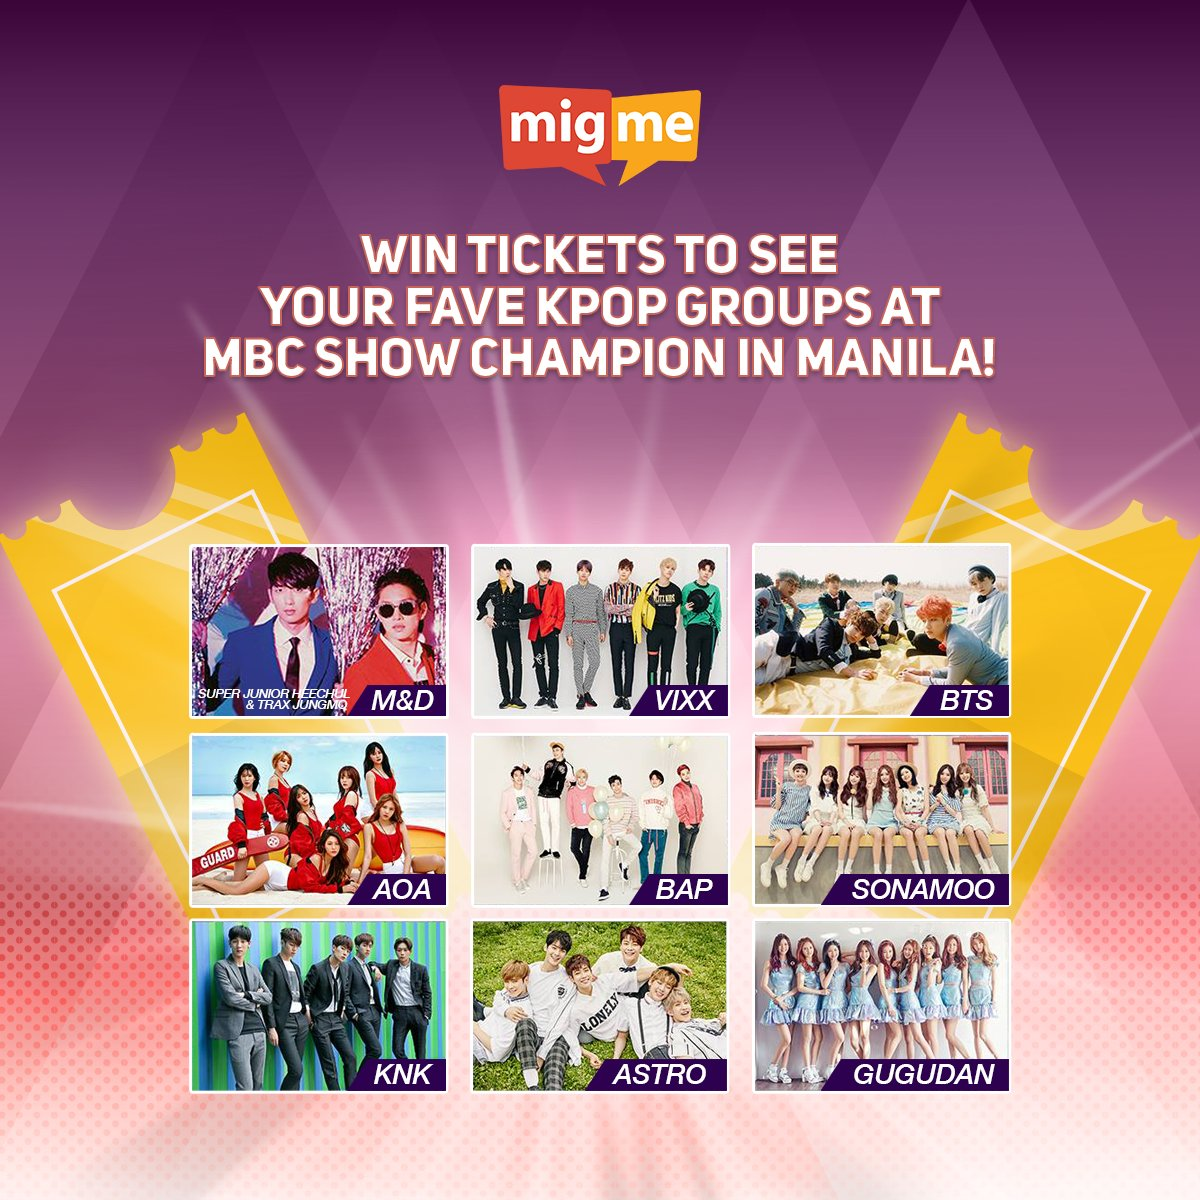 CALLING KPOP FANS! Now's your chance to win tickets to #ShowChampioninMNL! Full details here:https://t.co/zHAis8x8Sd https://t.co/DVhIAt8Dpp